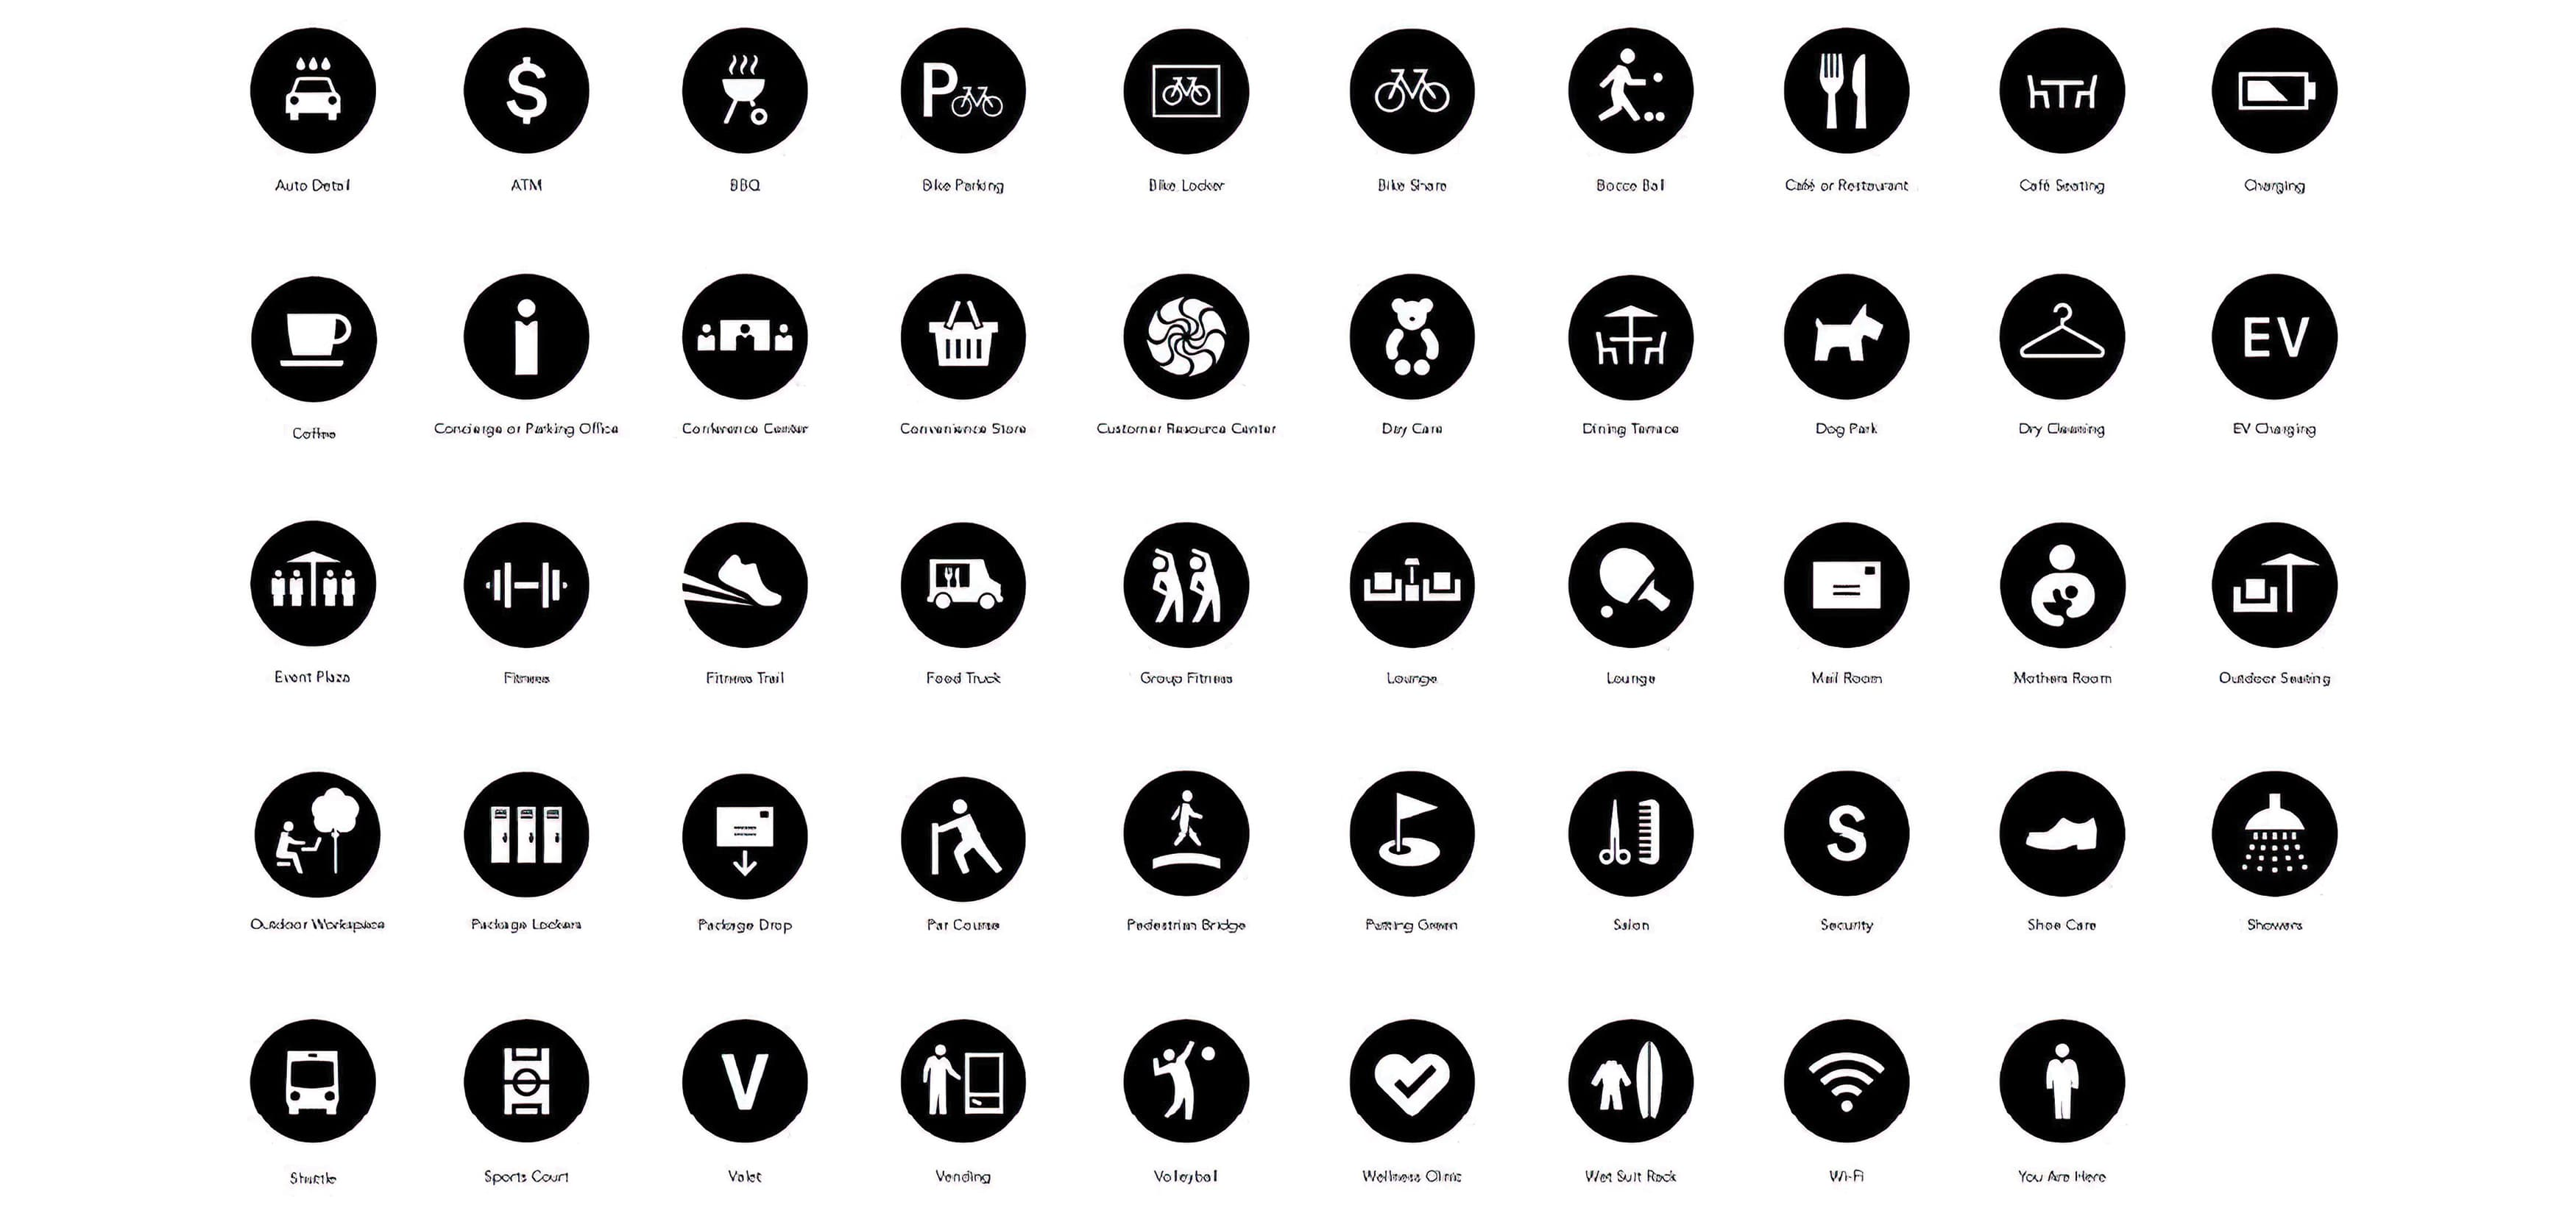 Irvine Company brand standards and guidelines icons